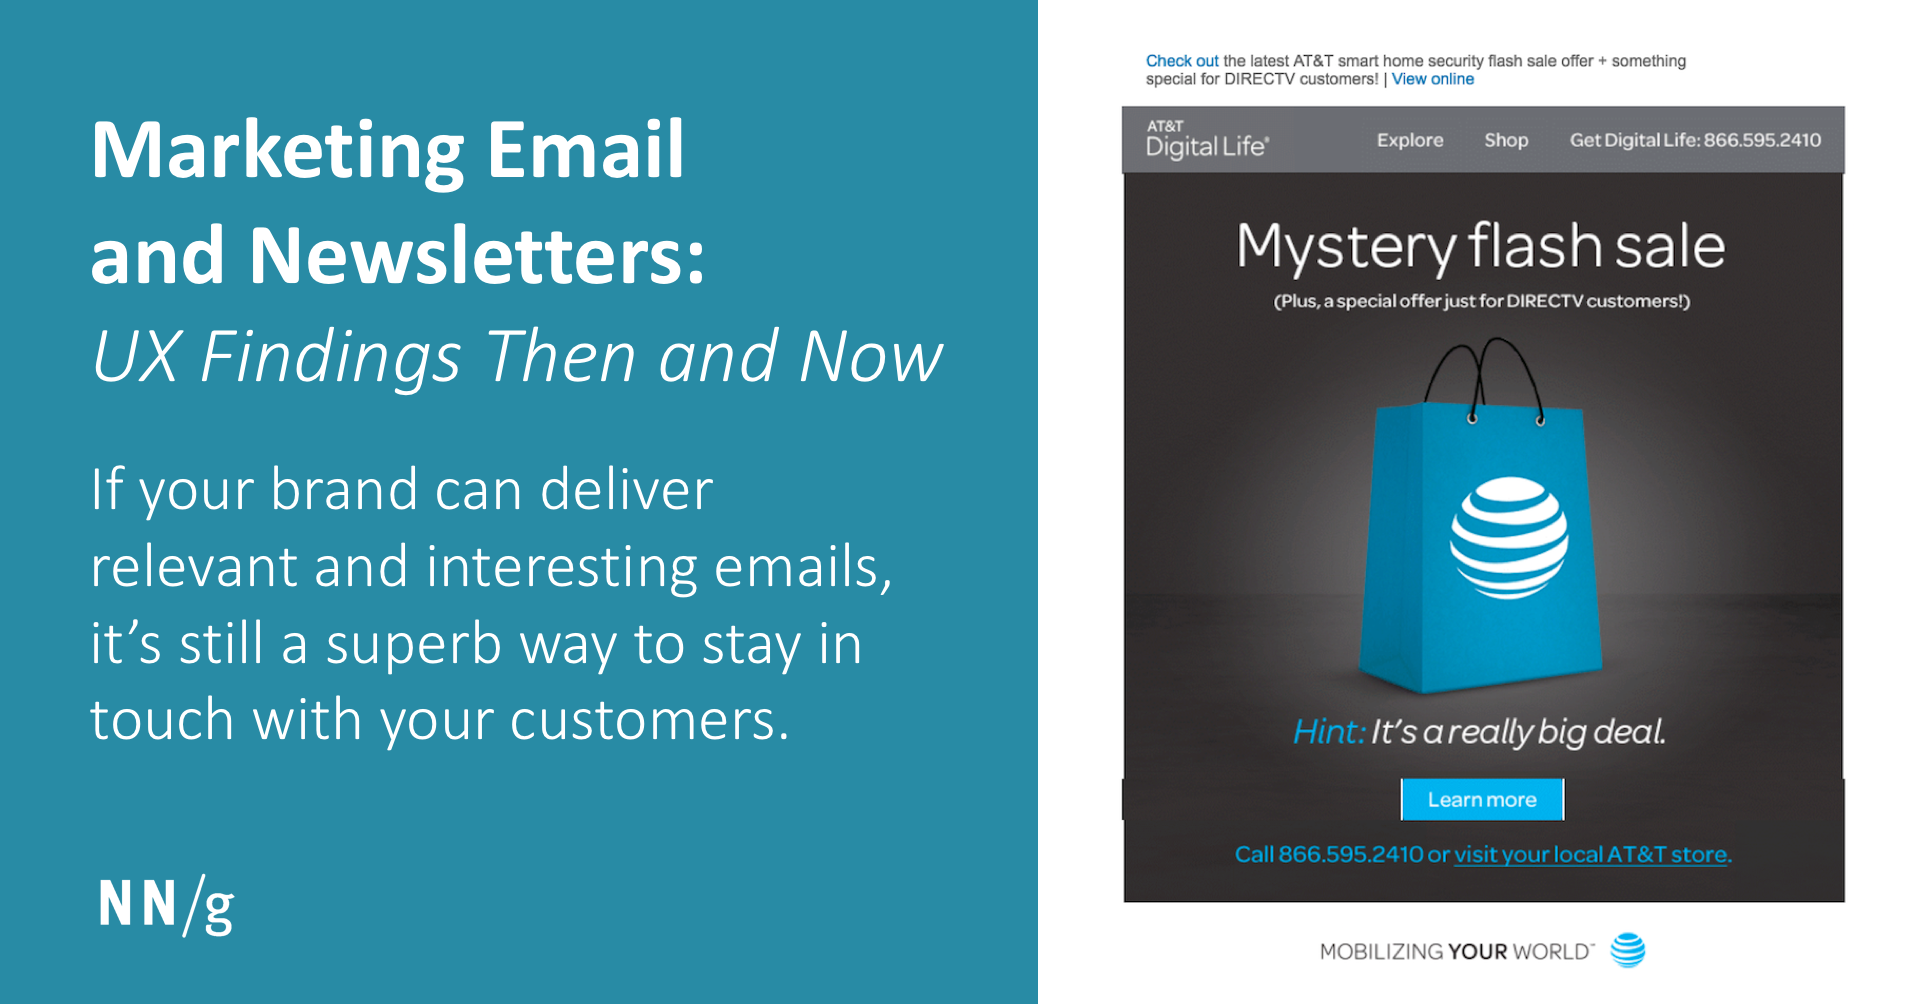 Marketing Email and Newsletters: UX Findings Then and Now